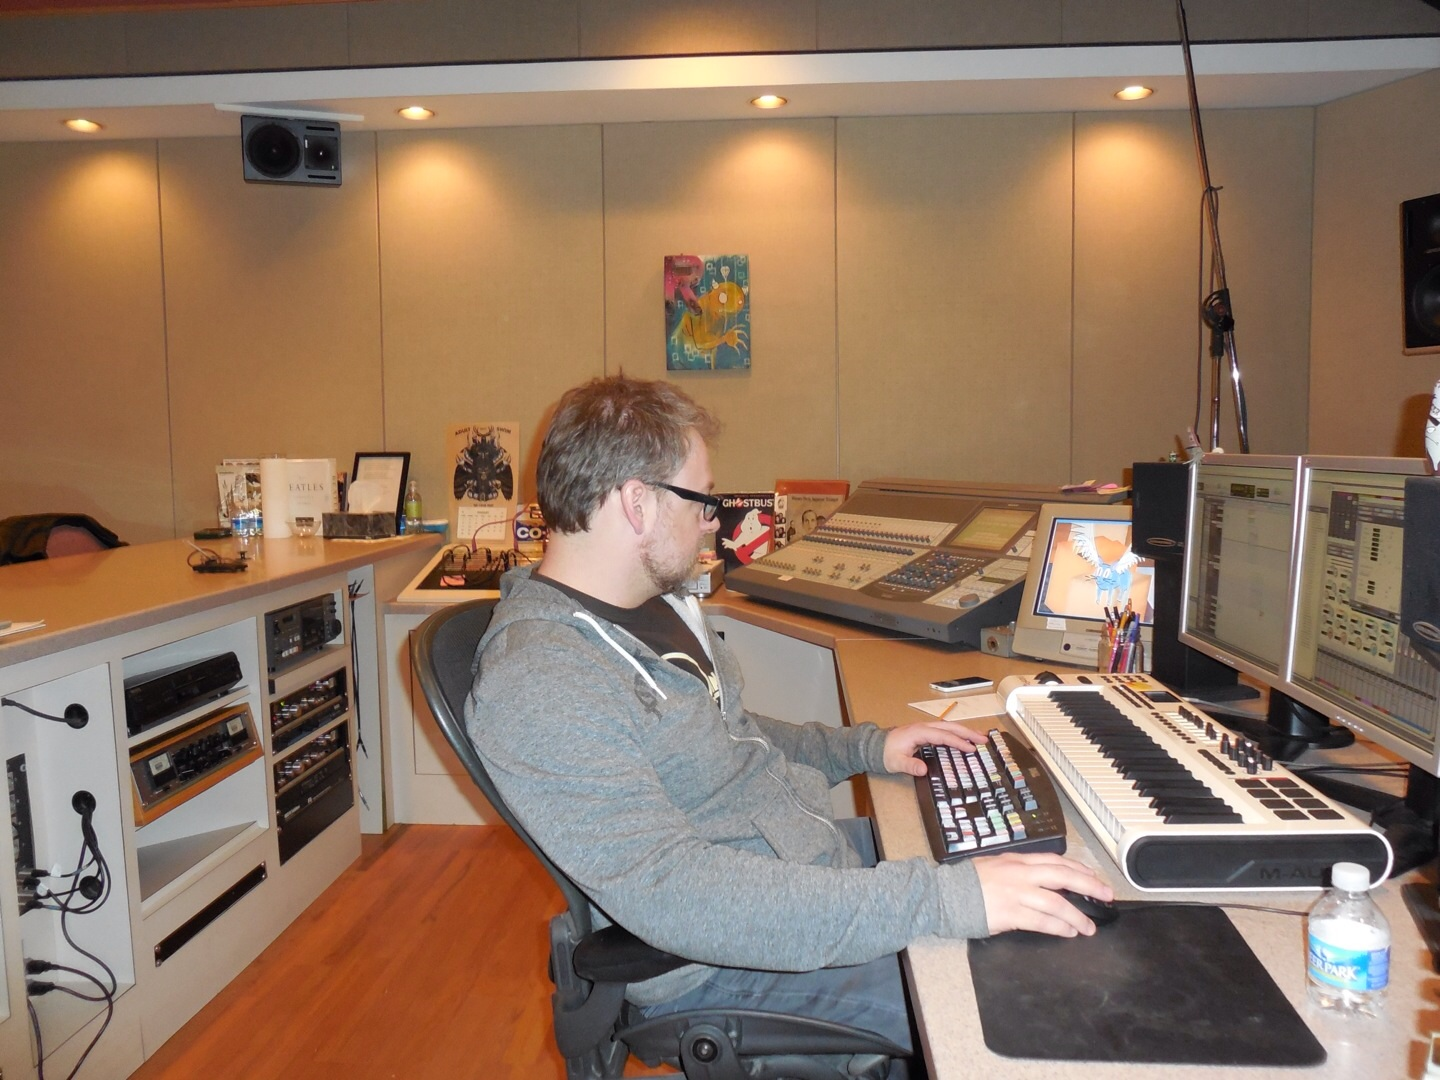 Squidbillies sound designer, Shawn Coleman, working on some new animation